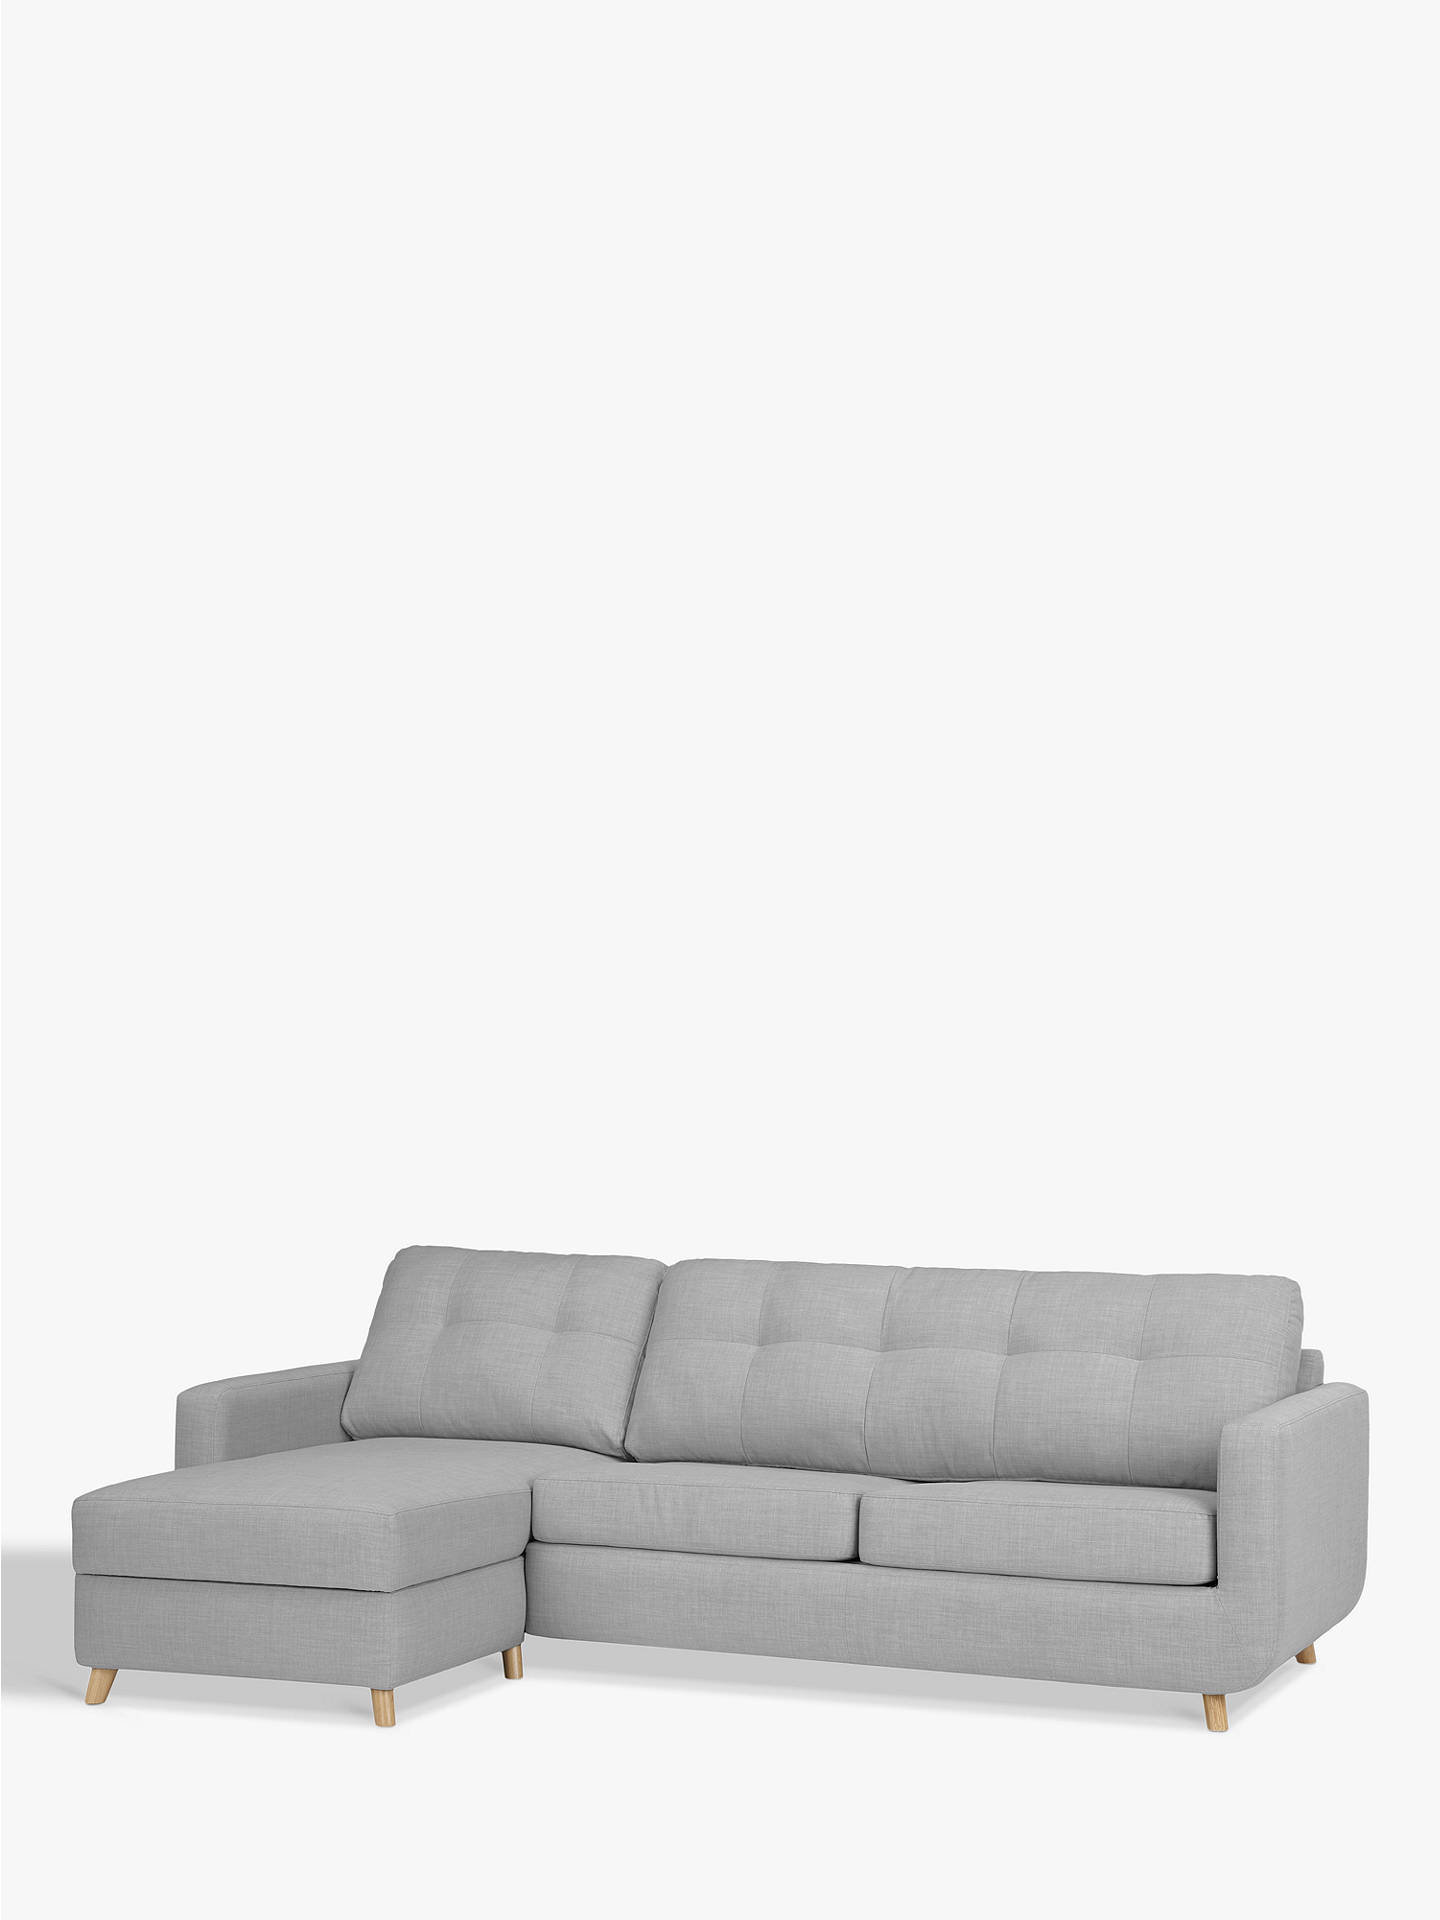 John Lewis & Partners Barbican LHF Chaise Sofa Bed with Storage at ...